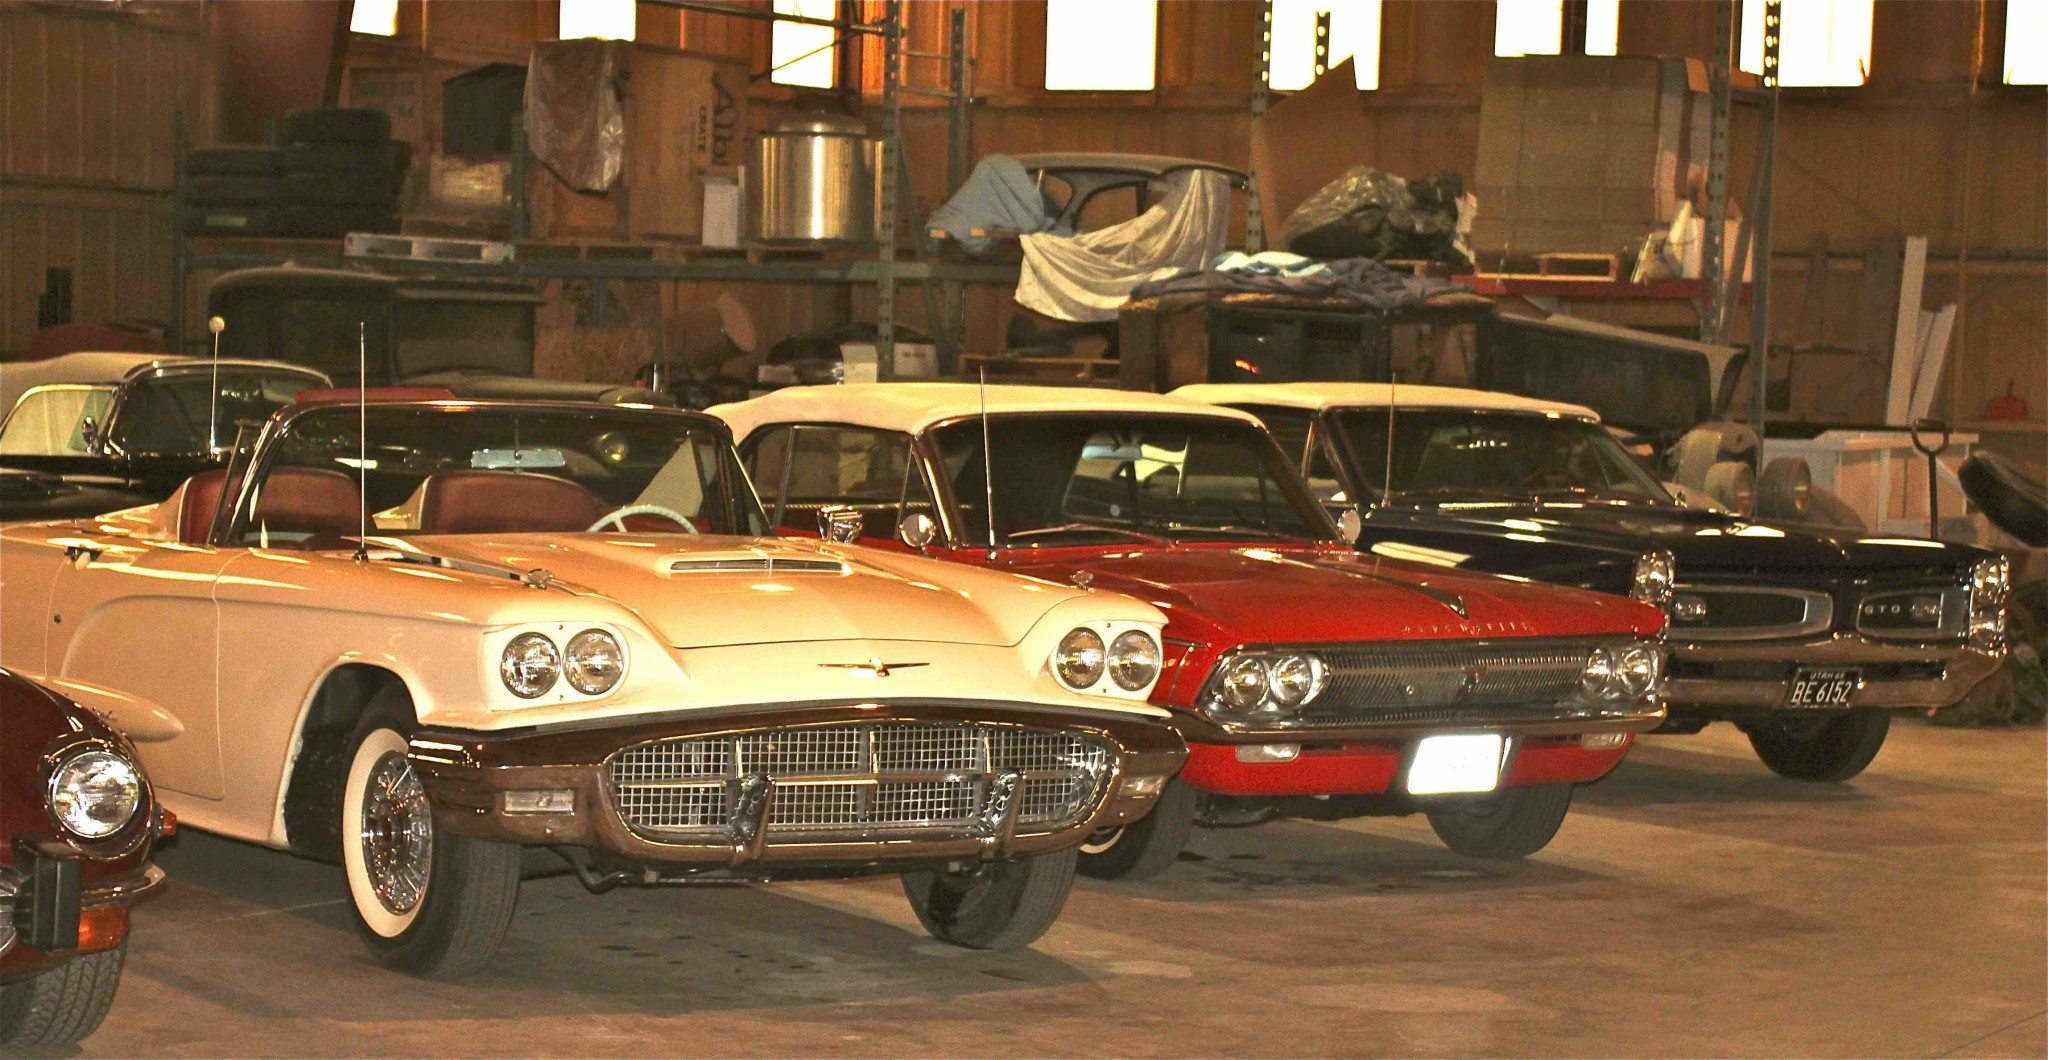 10 tips for safe winter classic car storage heacock classic insurance. Black Bedroom Furniture Sets. Home Design Ideas